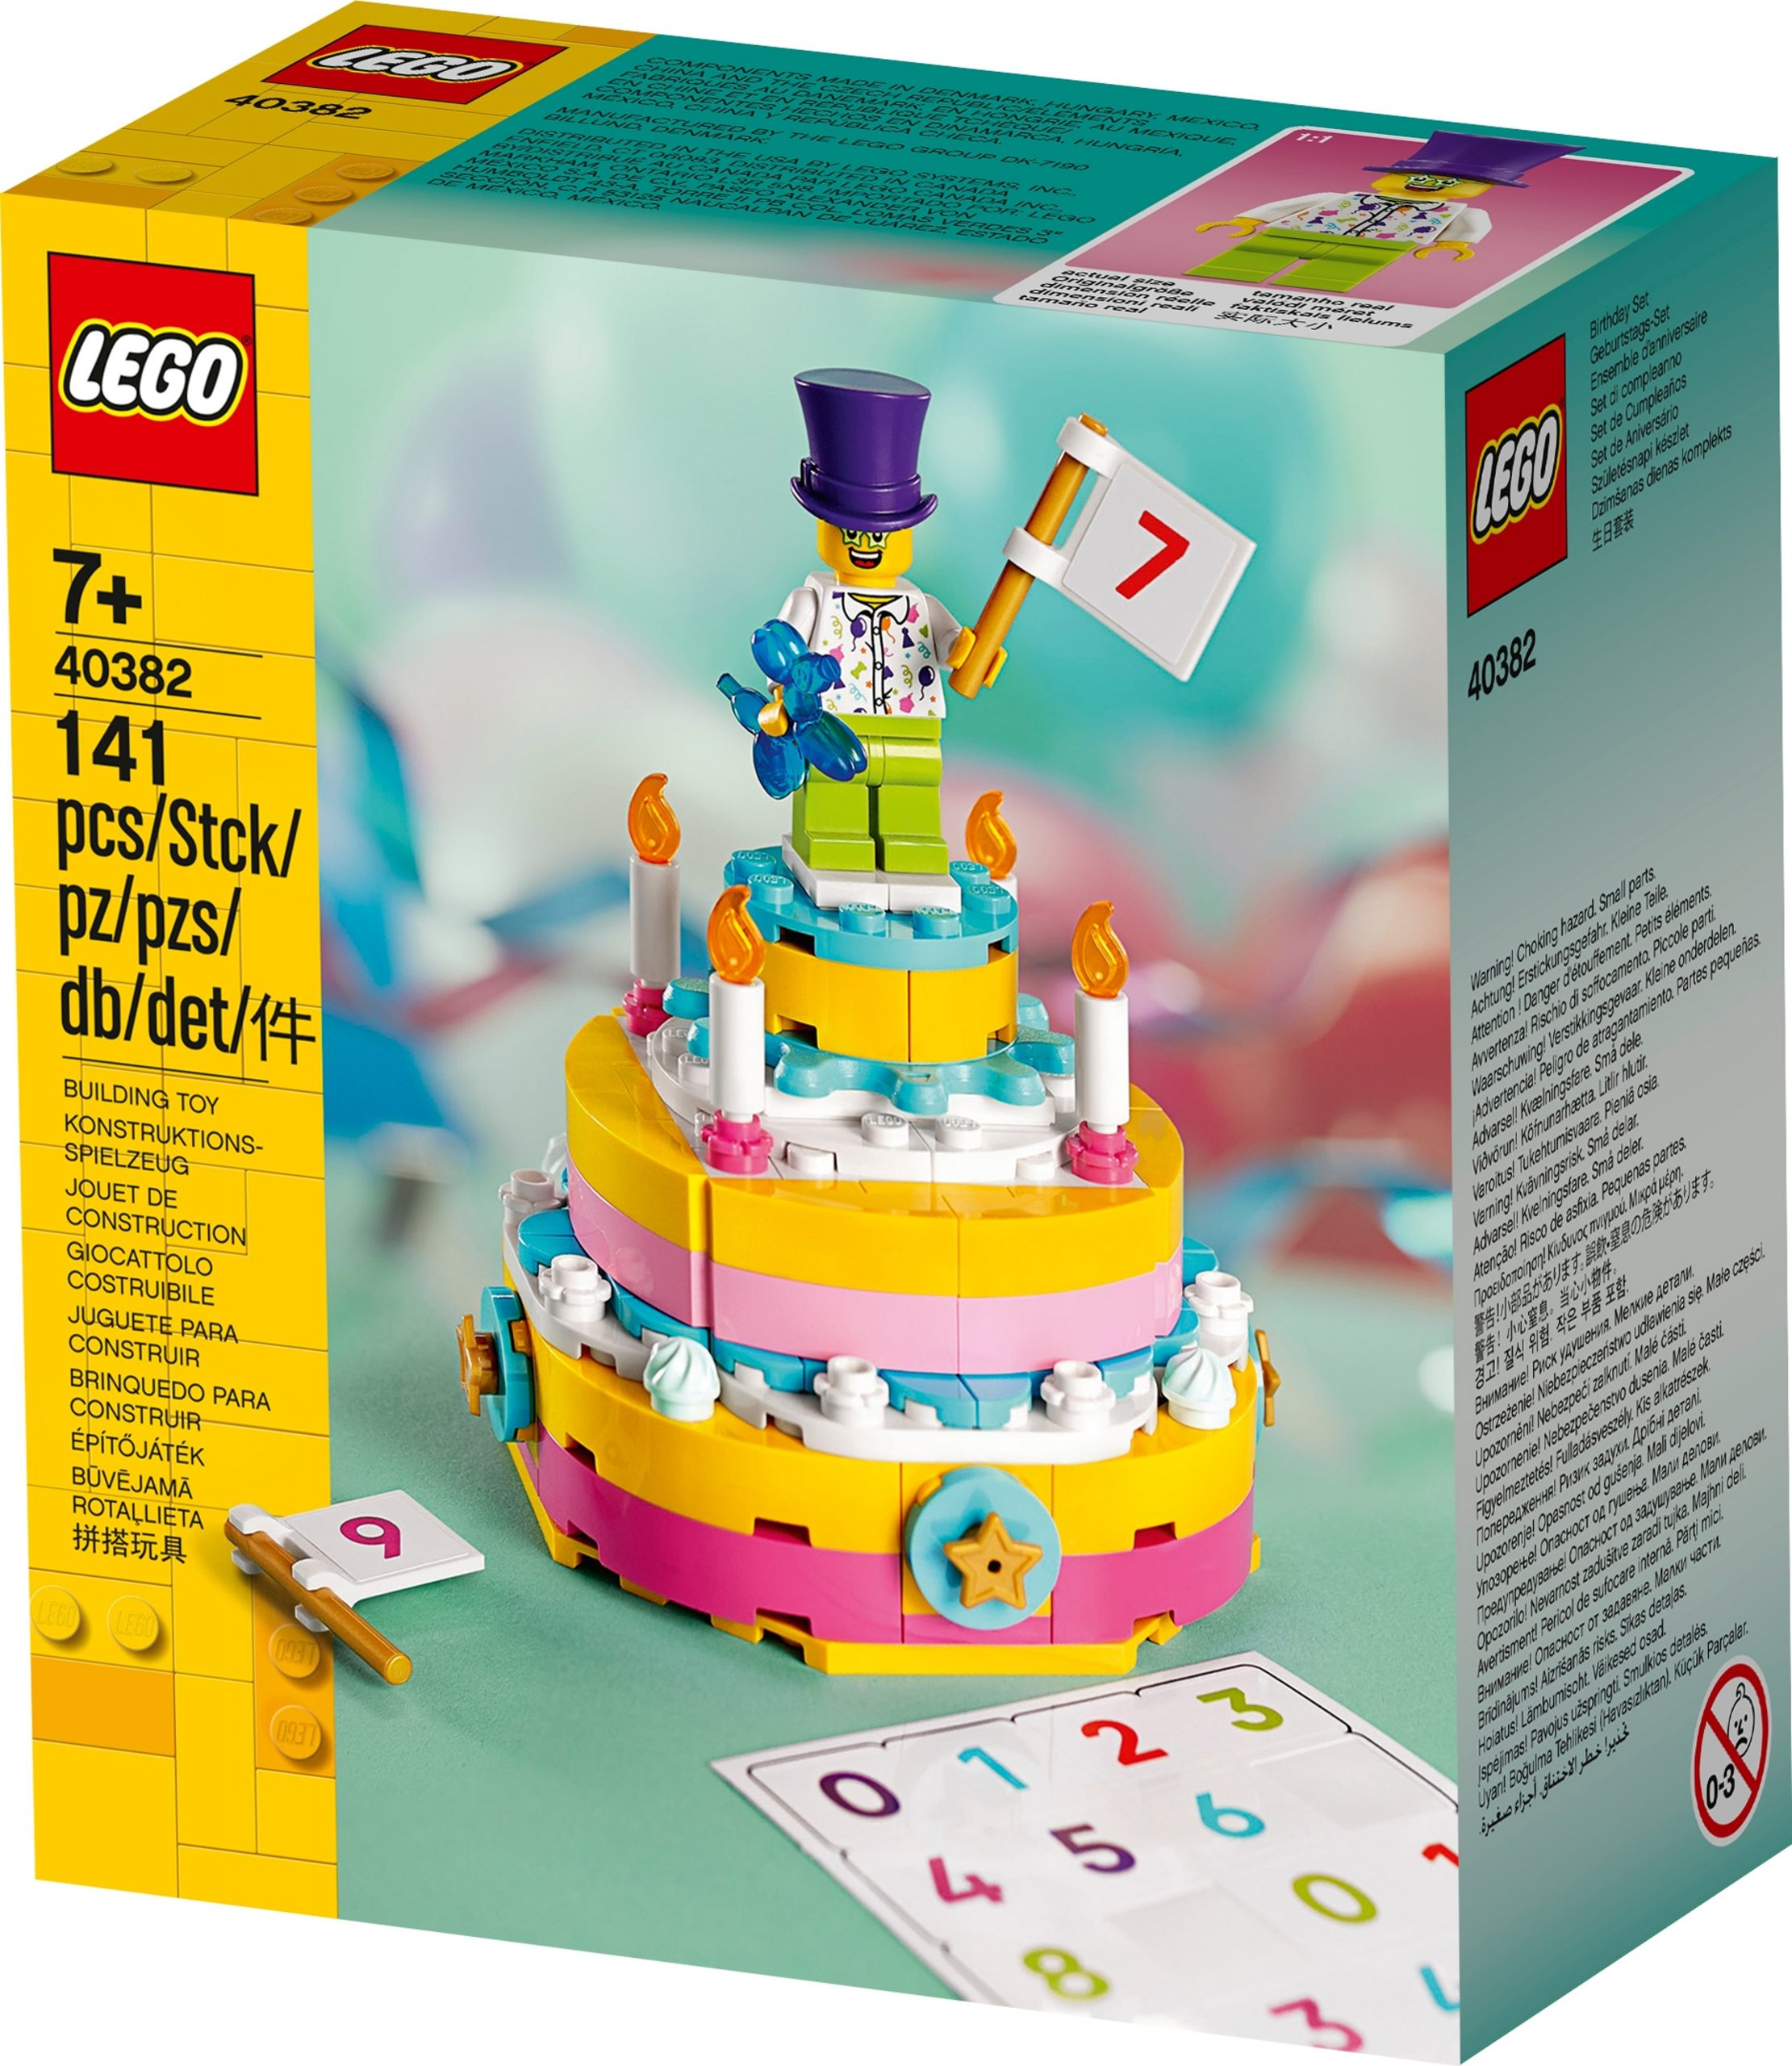 lego 40382 set compleanno scaled